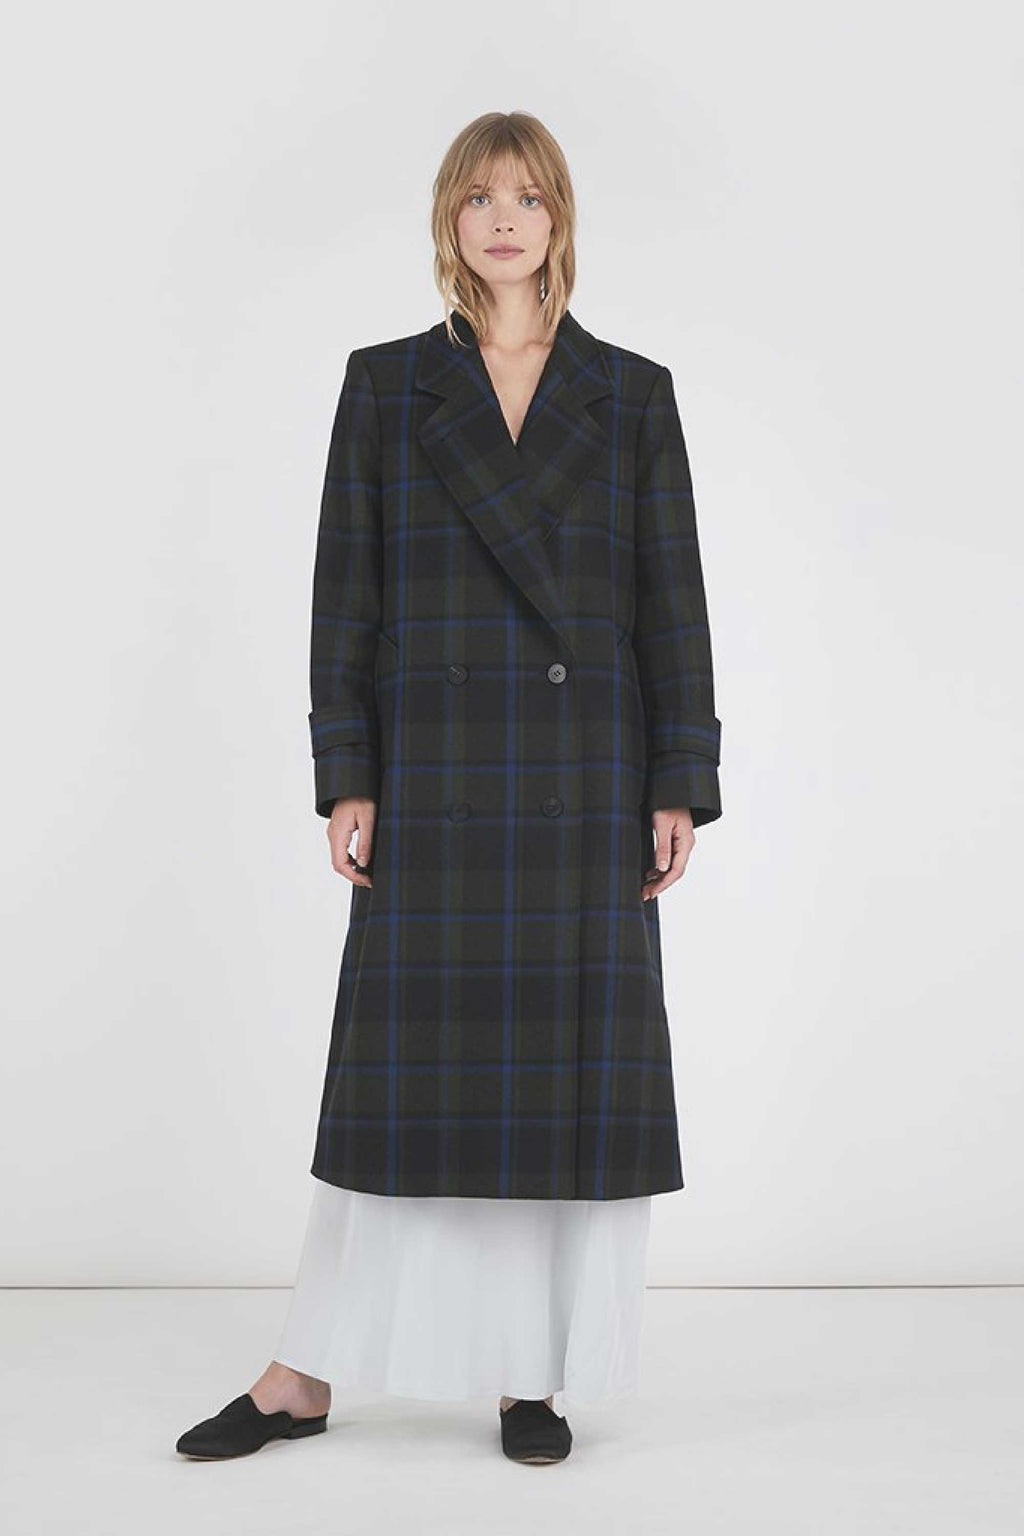 MELANIE DOUBLE BREASTED WOOL COAT - NAVY / GREEN PLAID